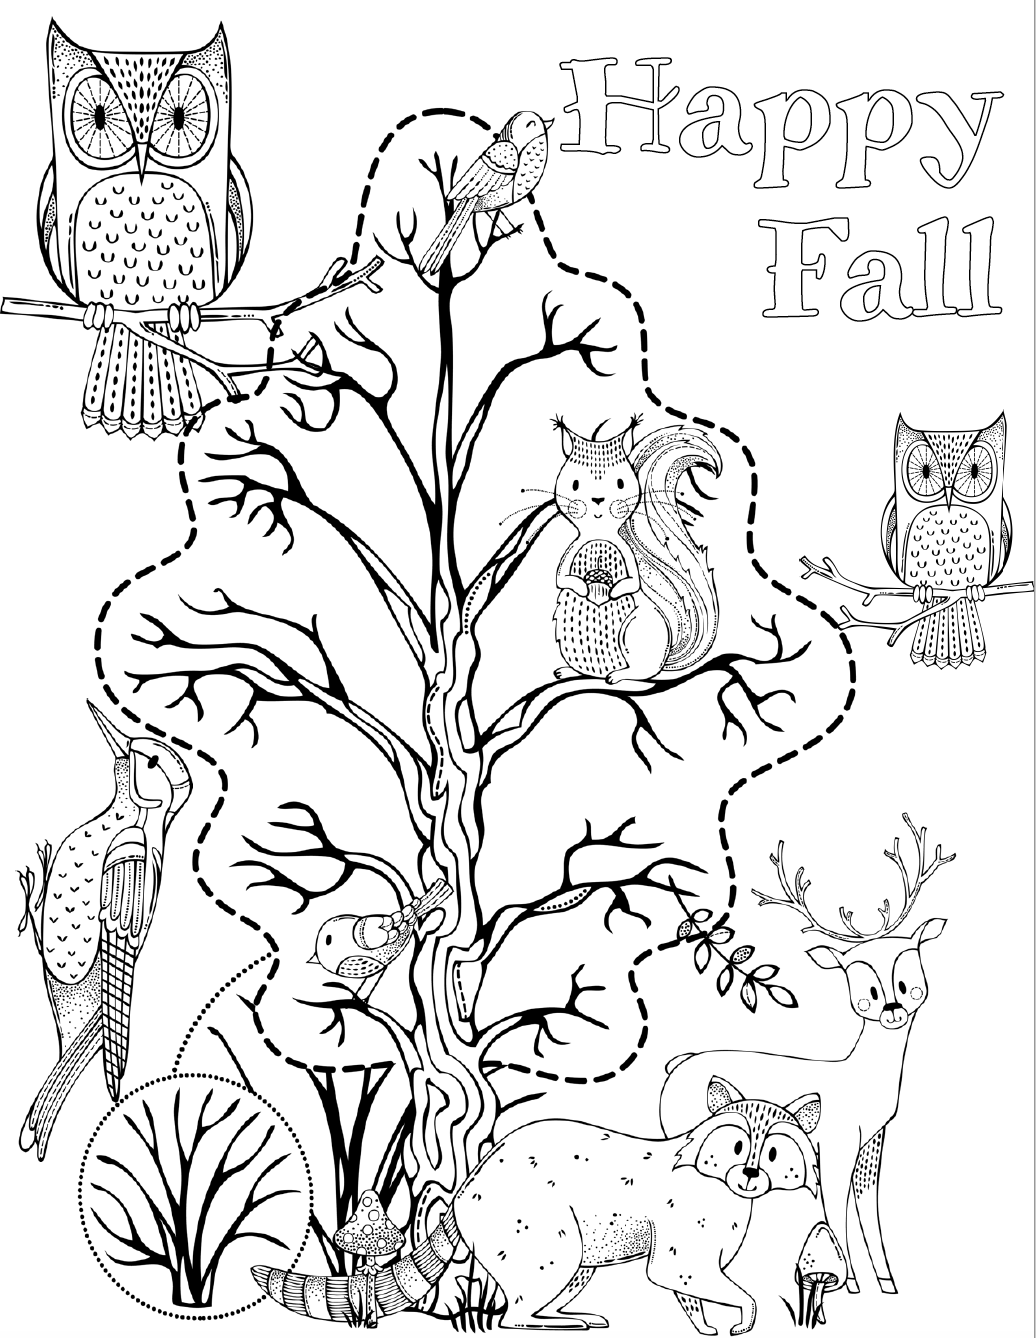 Happy fall with woodland animals. Free printable halloween coloring pages for kids. 5 designs to choose from! Spooky houses, ghosts, pumpkins, and fall-theme from easy to a little more difficult. #free #printable #freeprintable #halloween #coloring #halloweencoloring #freecoloring